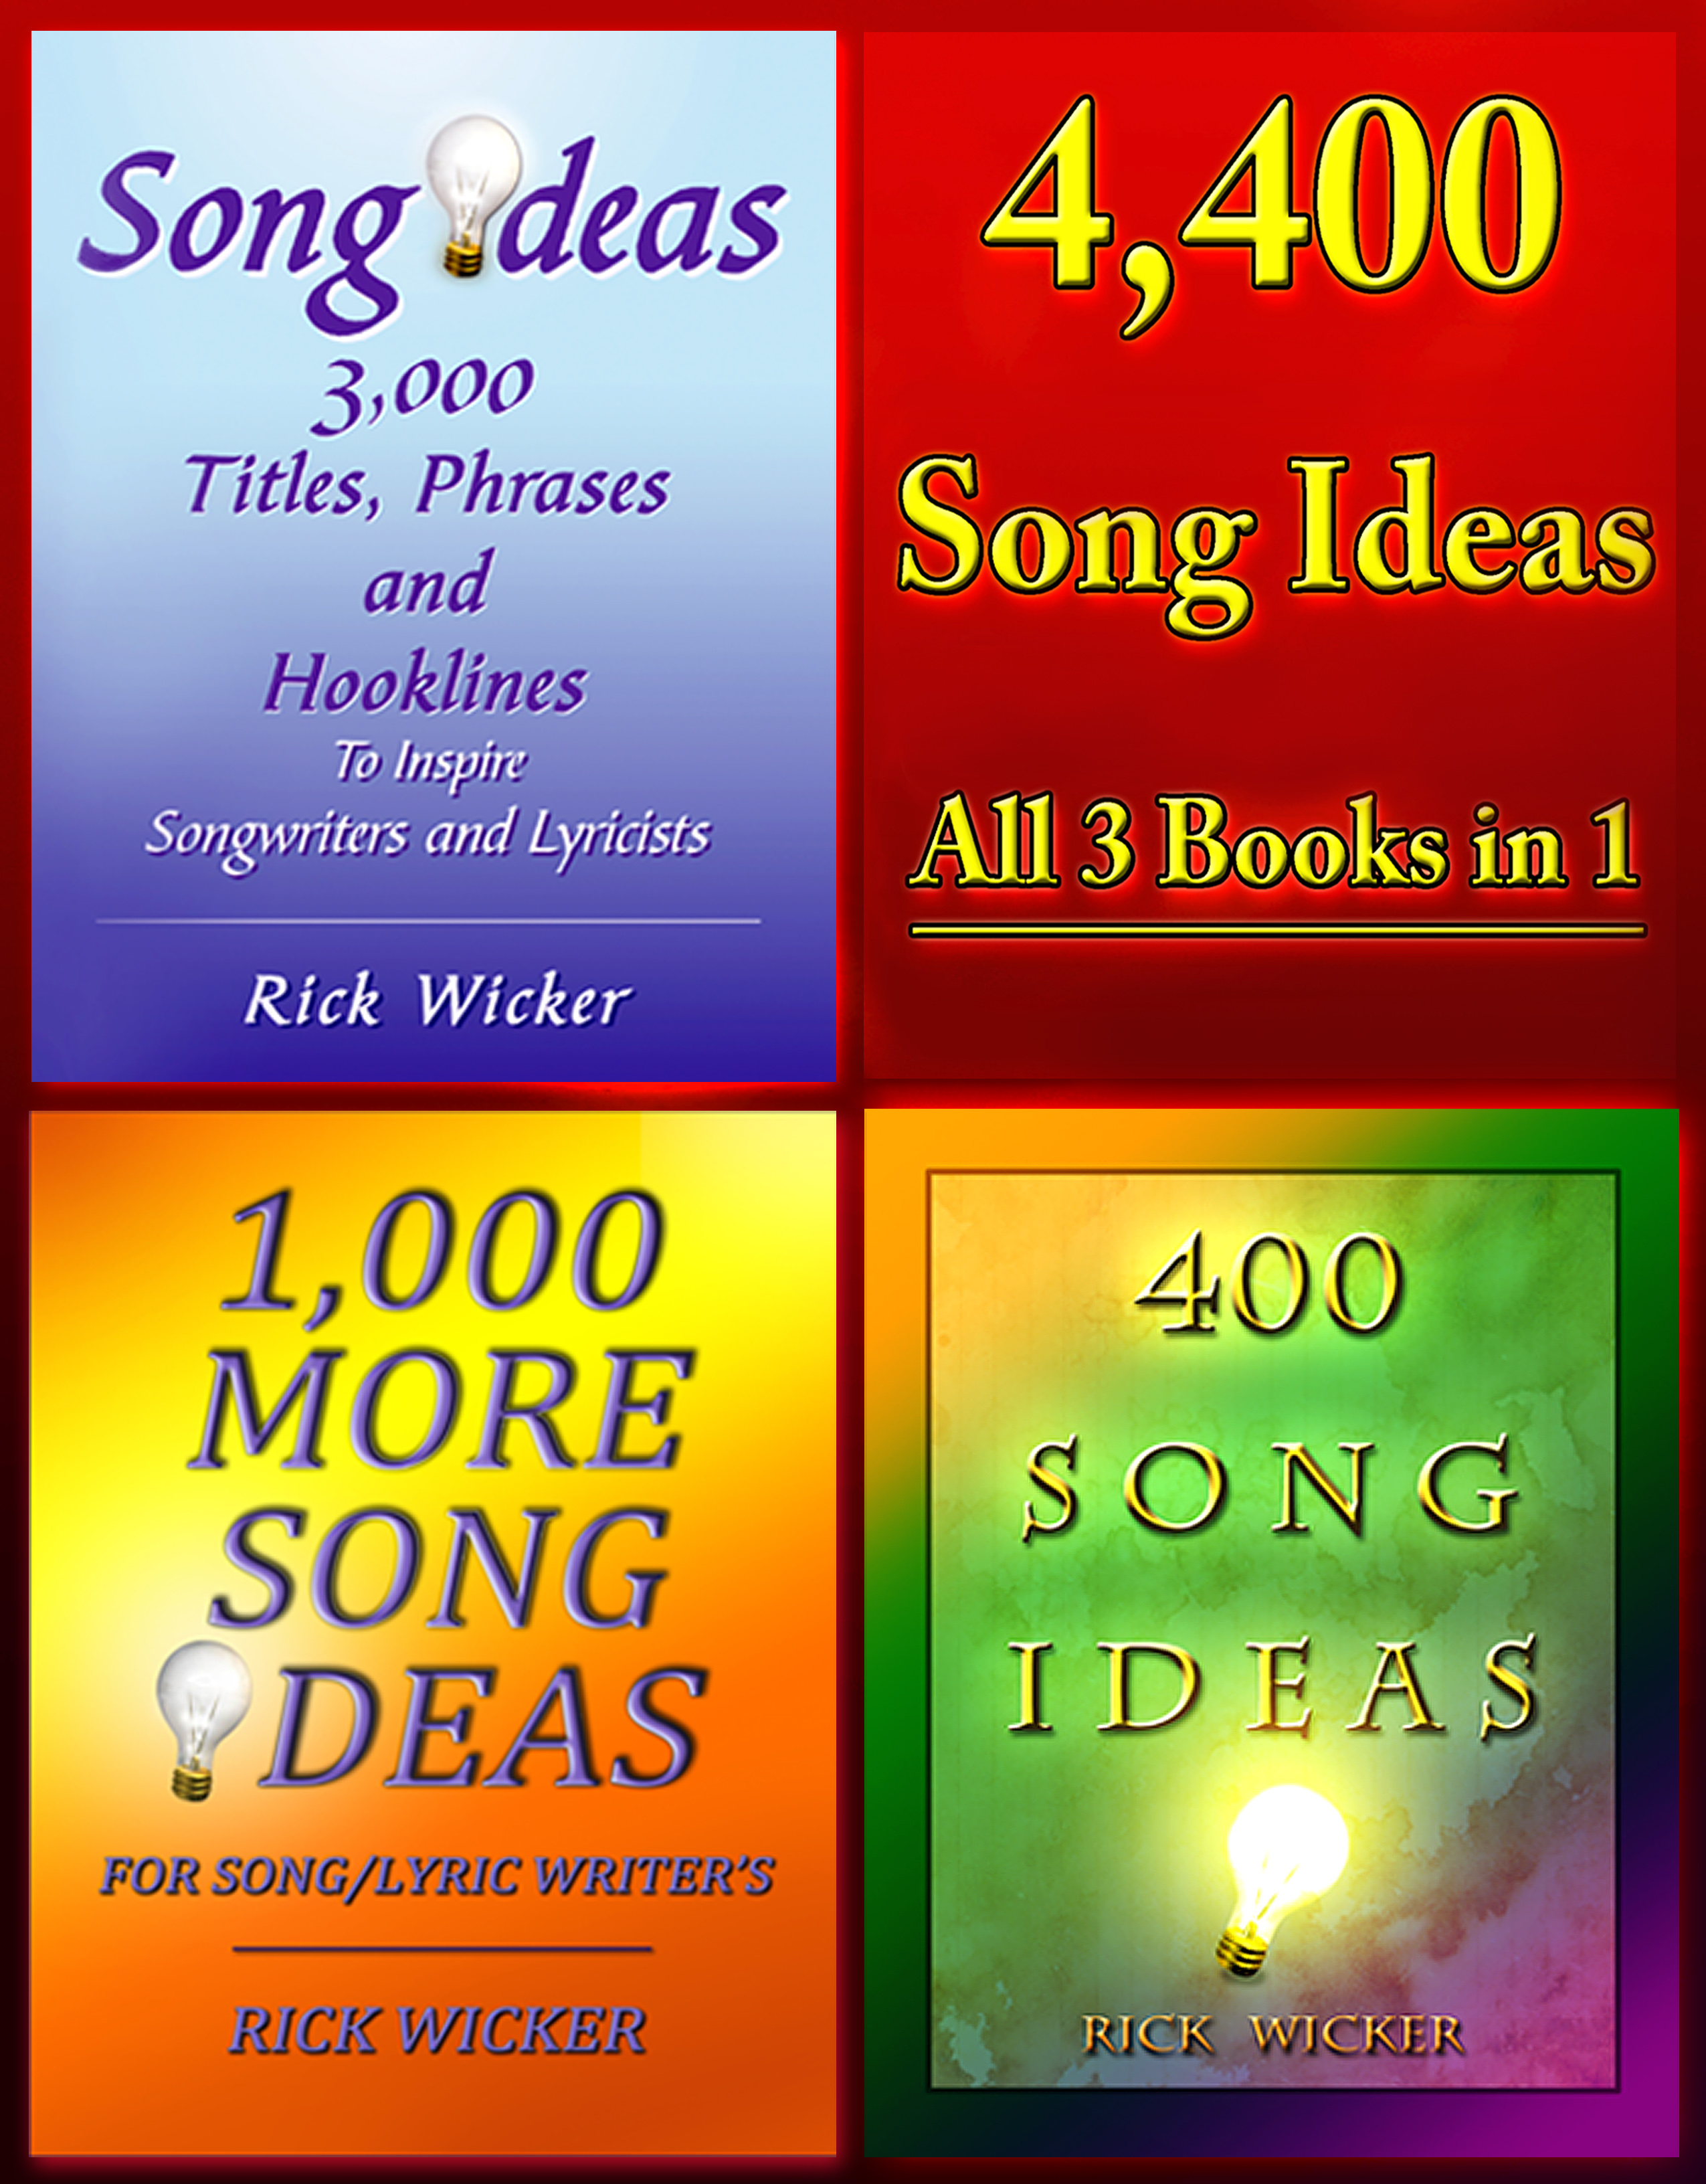 4,400 Song Ideas - All 3 Books in 1